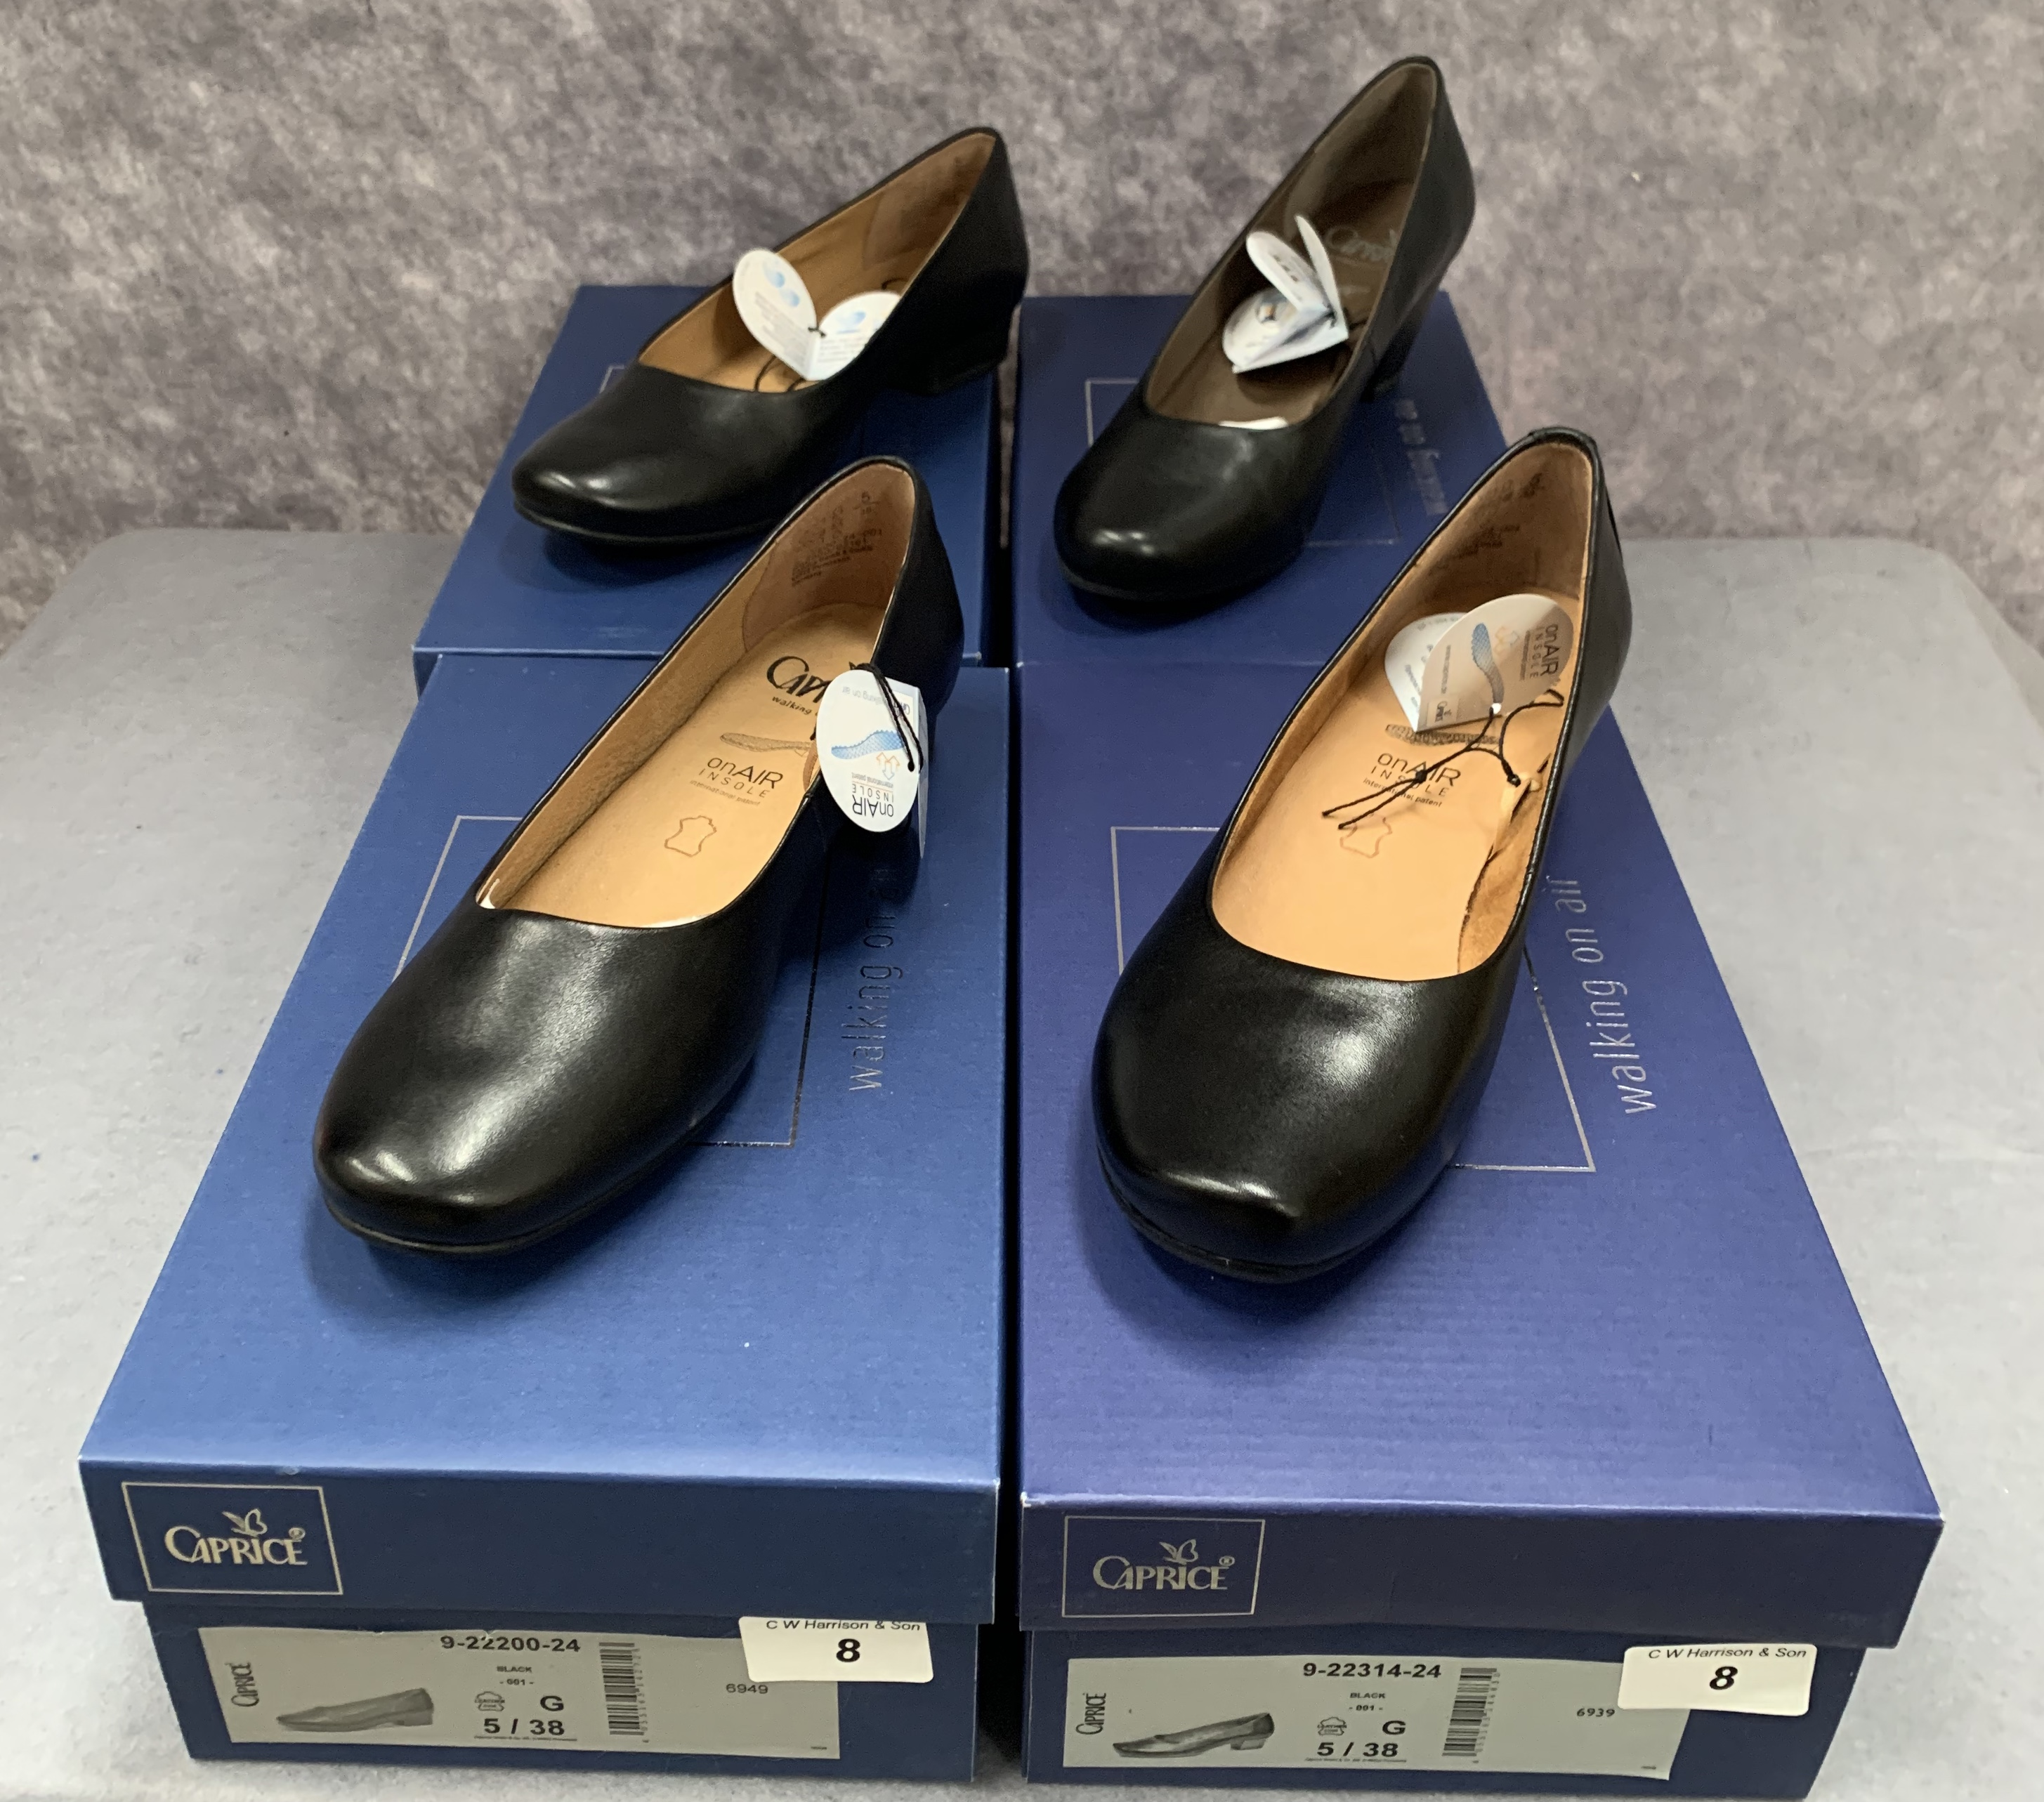 Four pairs of Caprice ladies shoes in black, various styles, size 5, retail price £59.